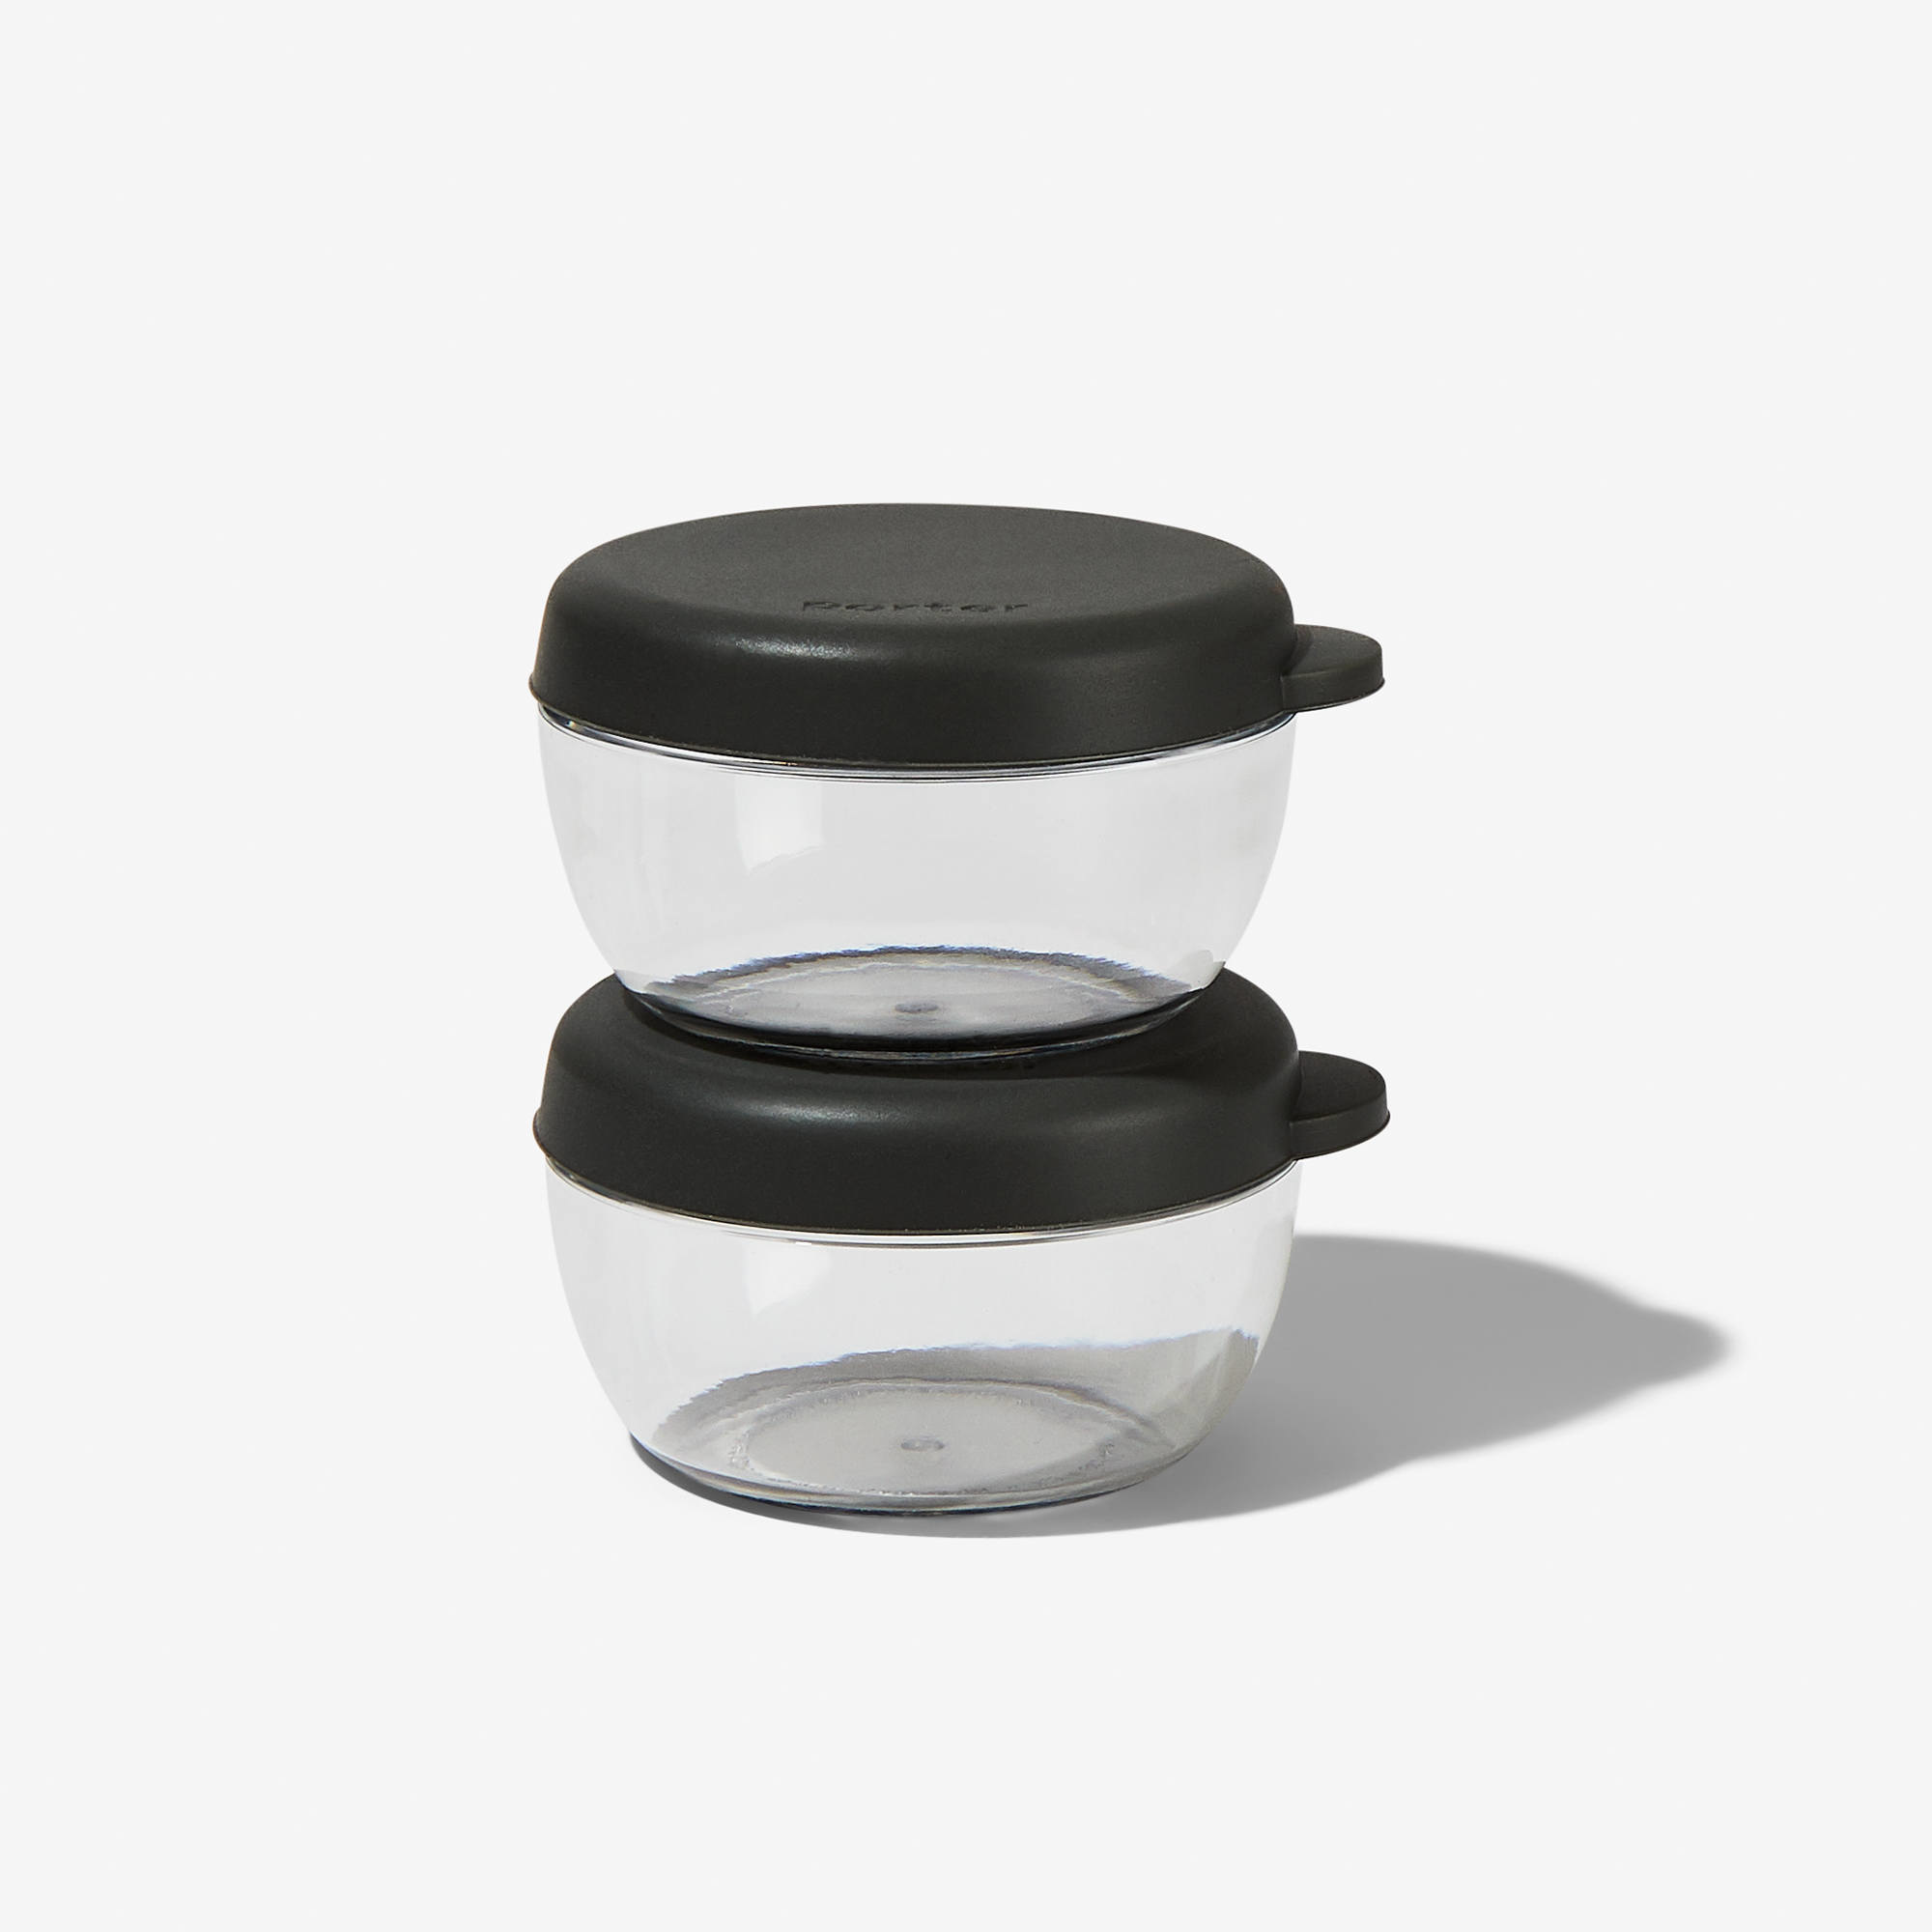 W&P Design The Porter Dressing Containers